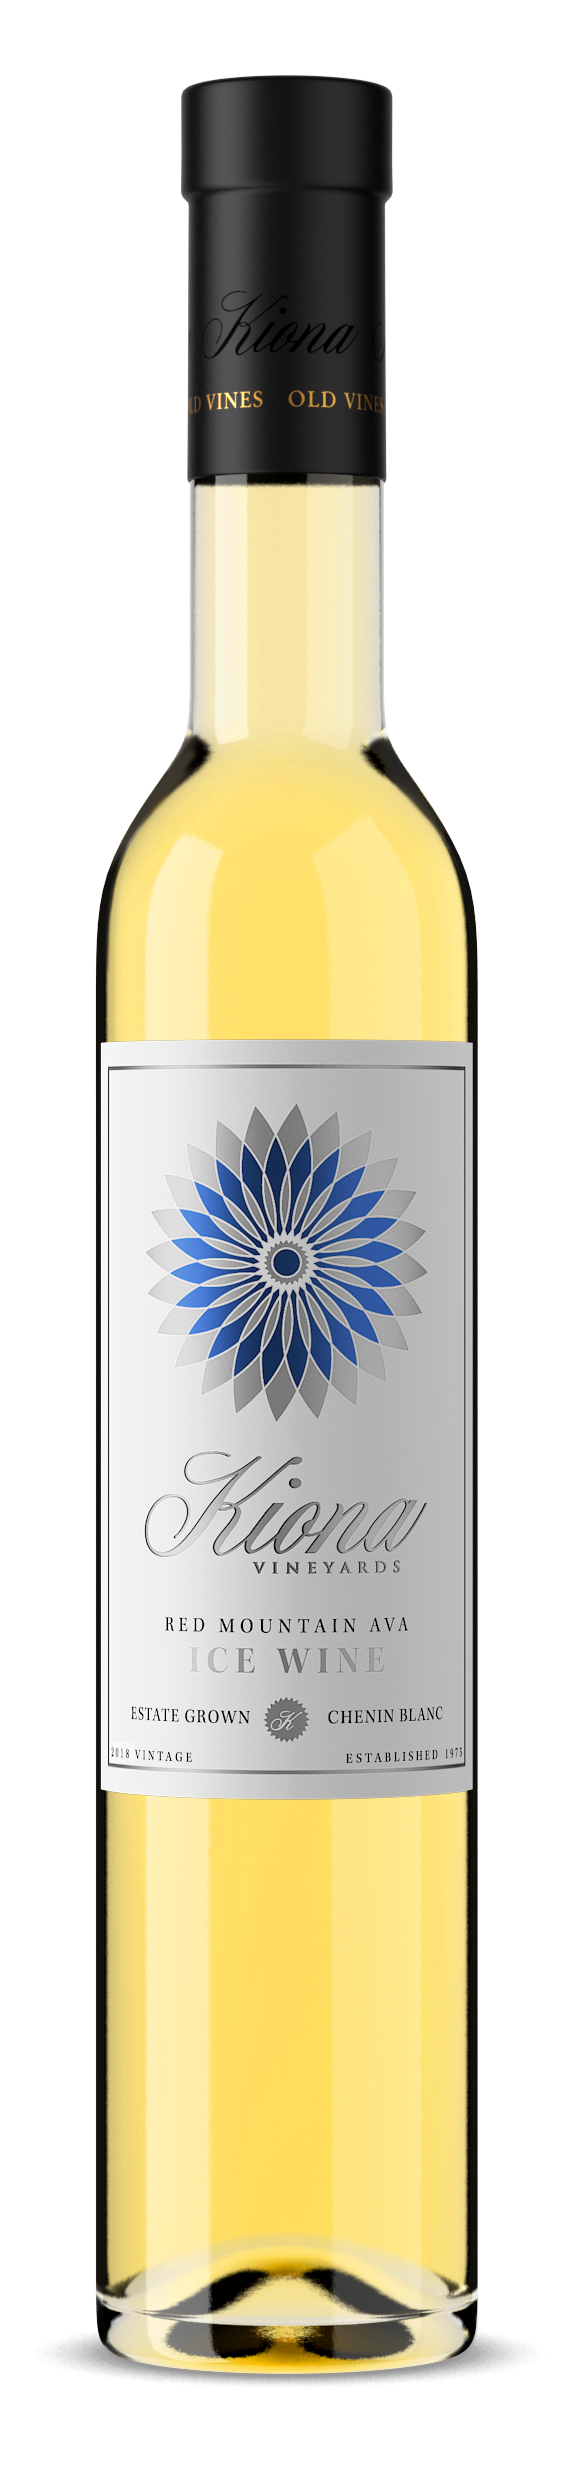 Kiona Red Mountain Ice Wine